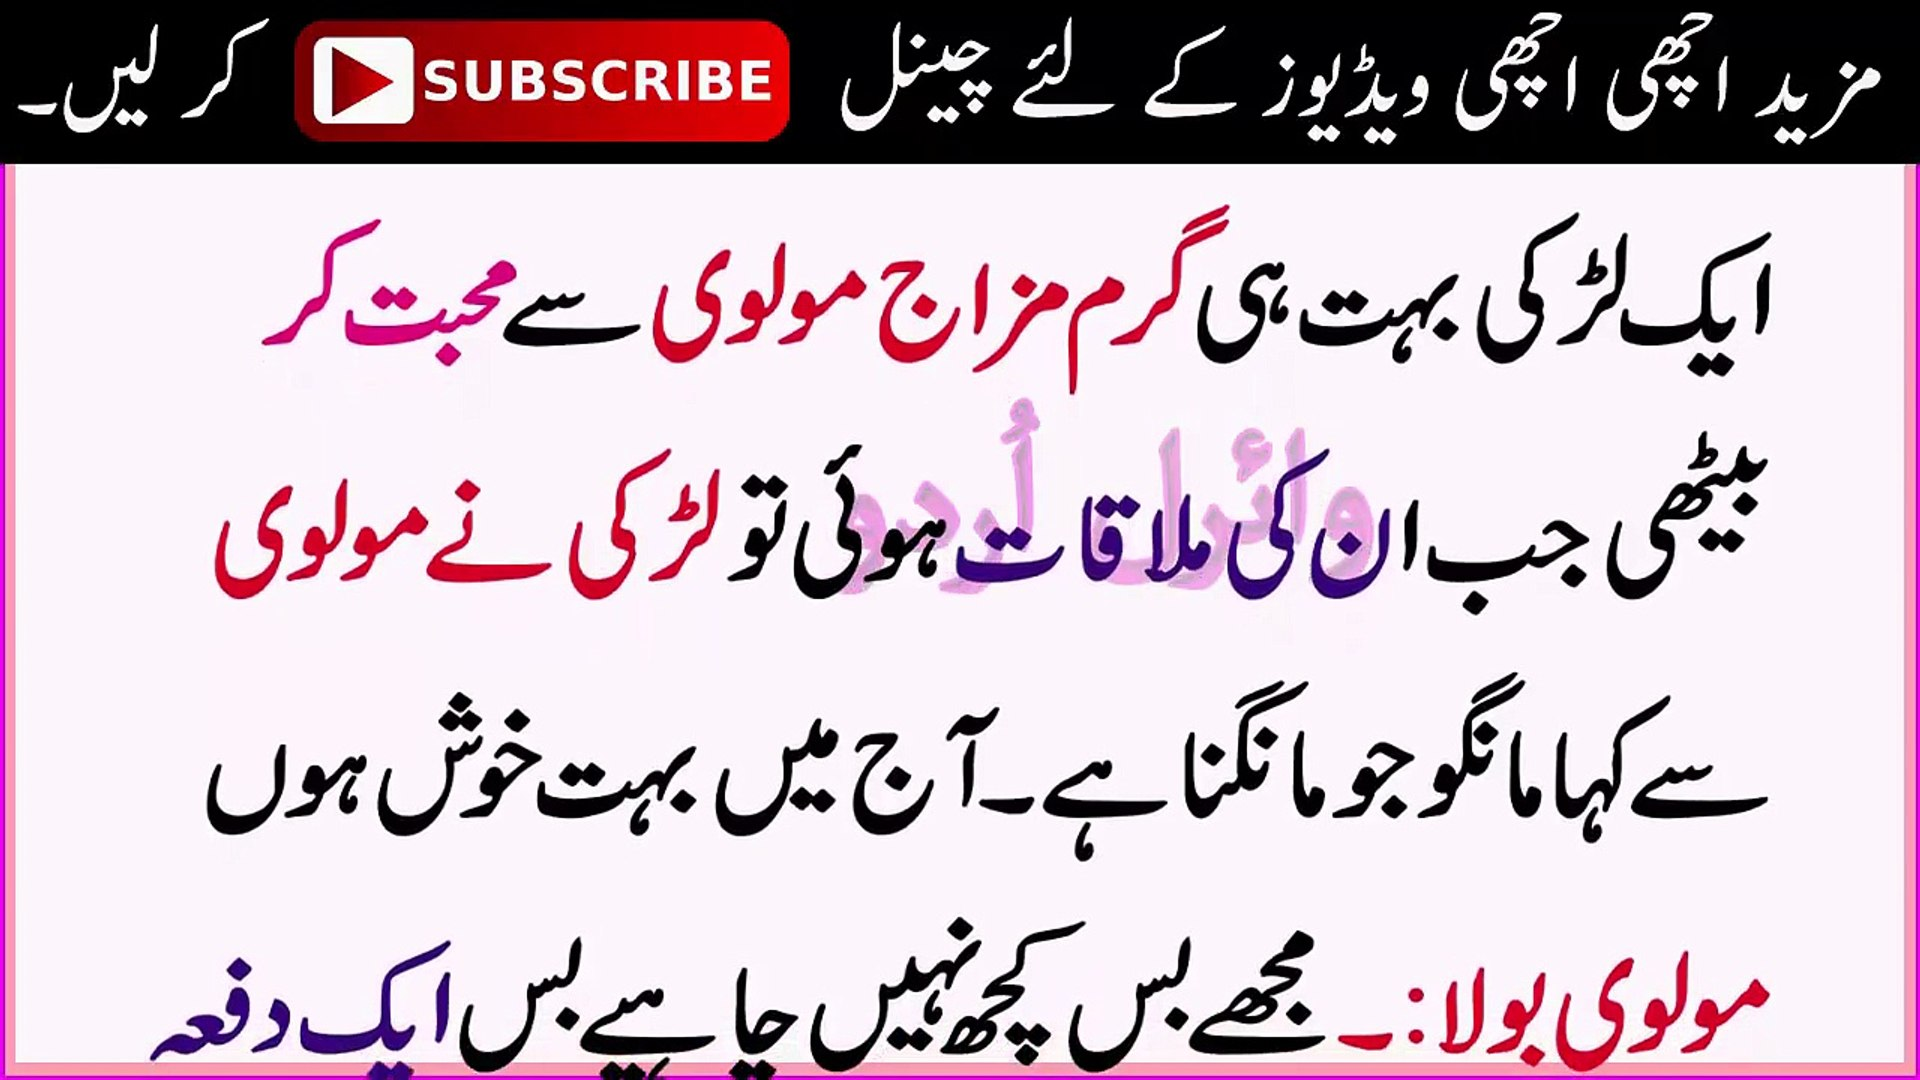 Funny Urdu Jokes Teaser Iq Test Ll Brain Game Ll Puzzle Iq Level Ll Riddles Question And Answers Video Dailymotion